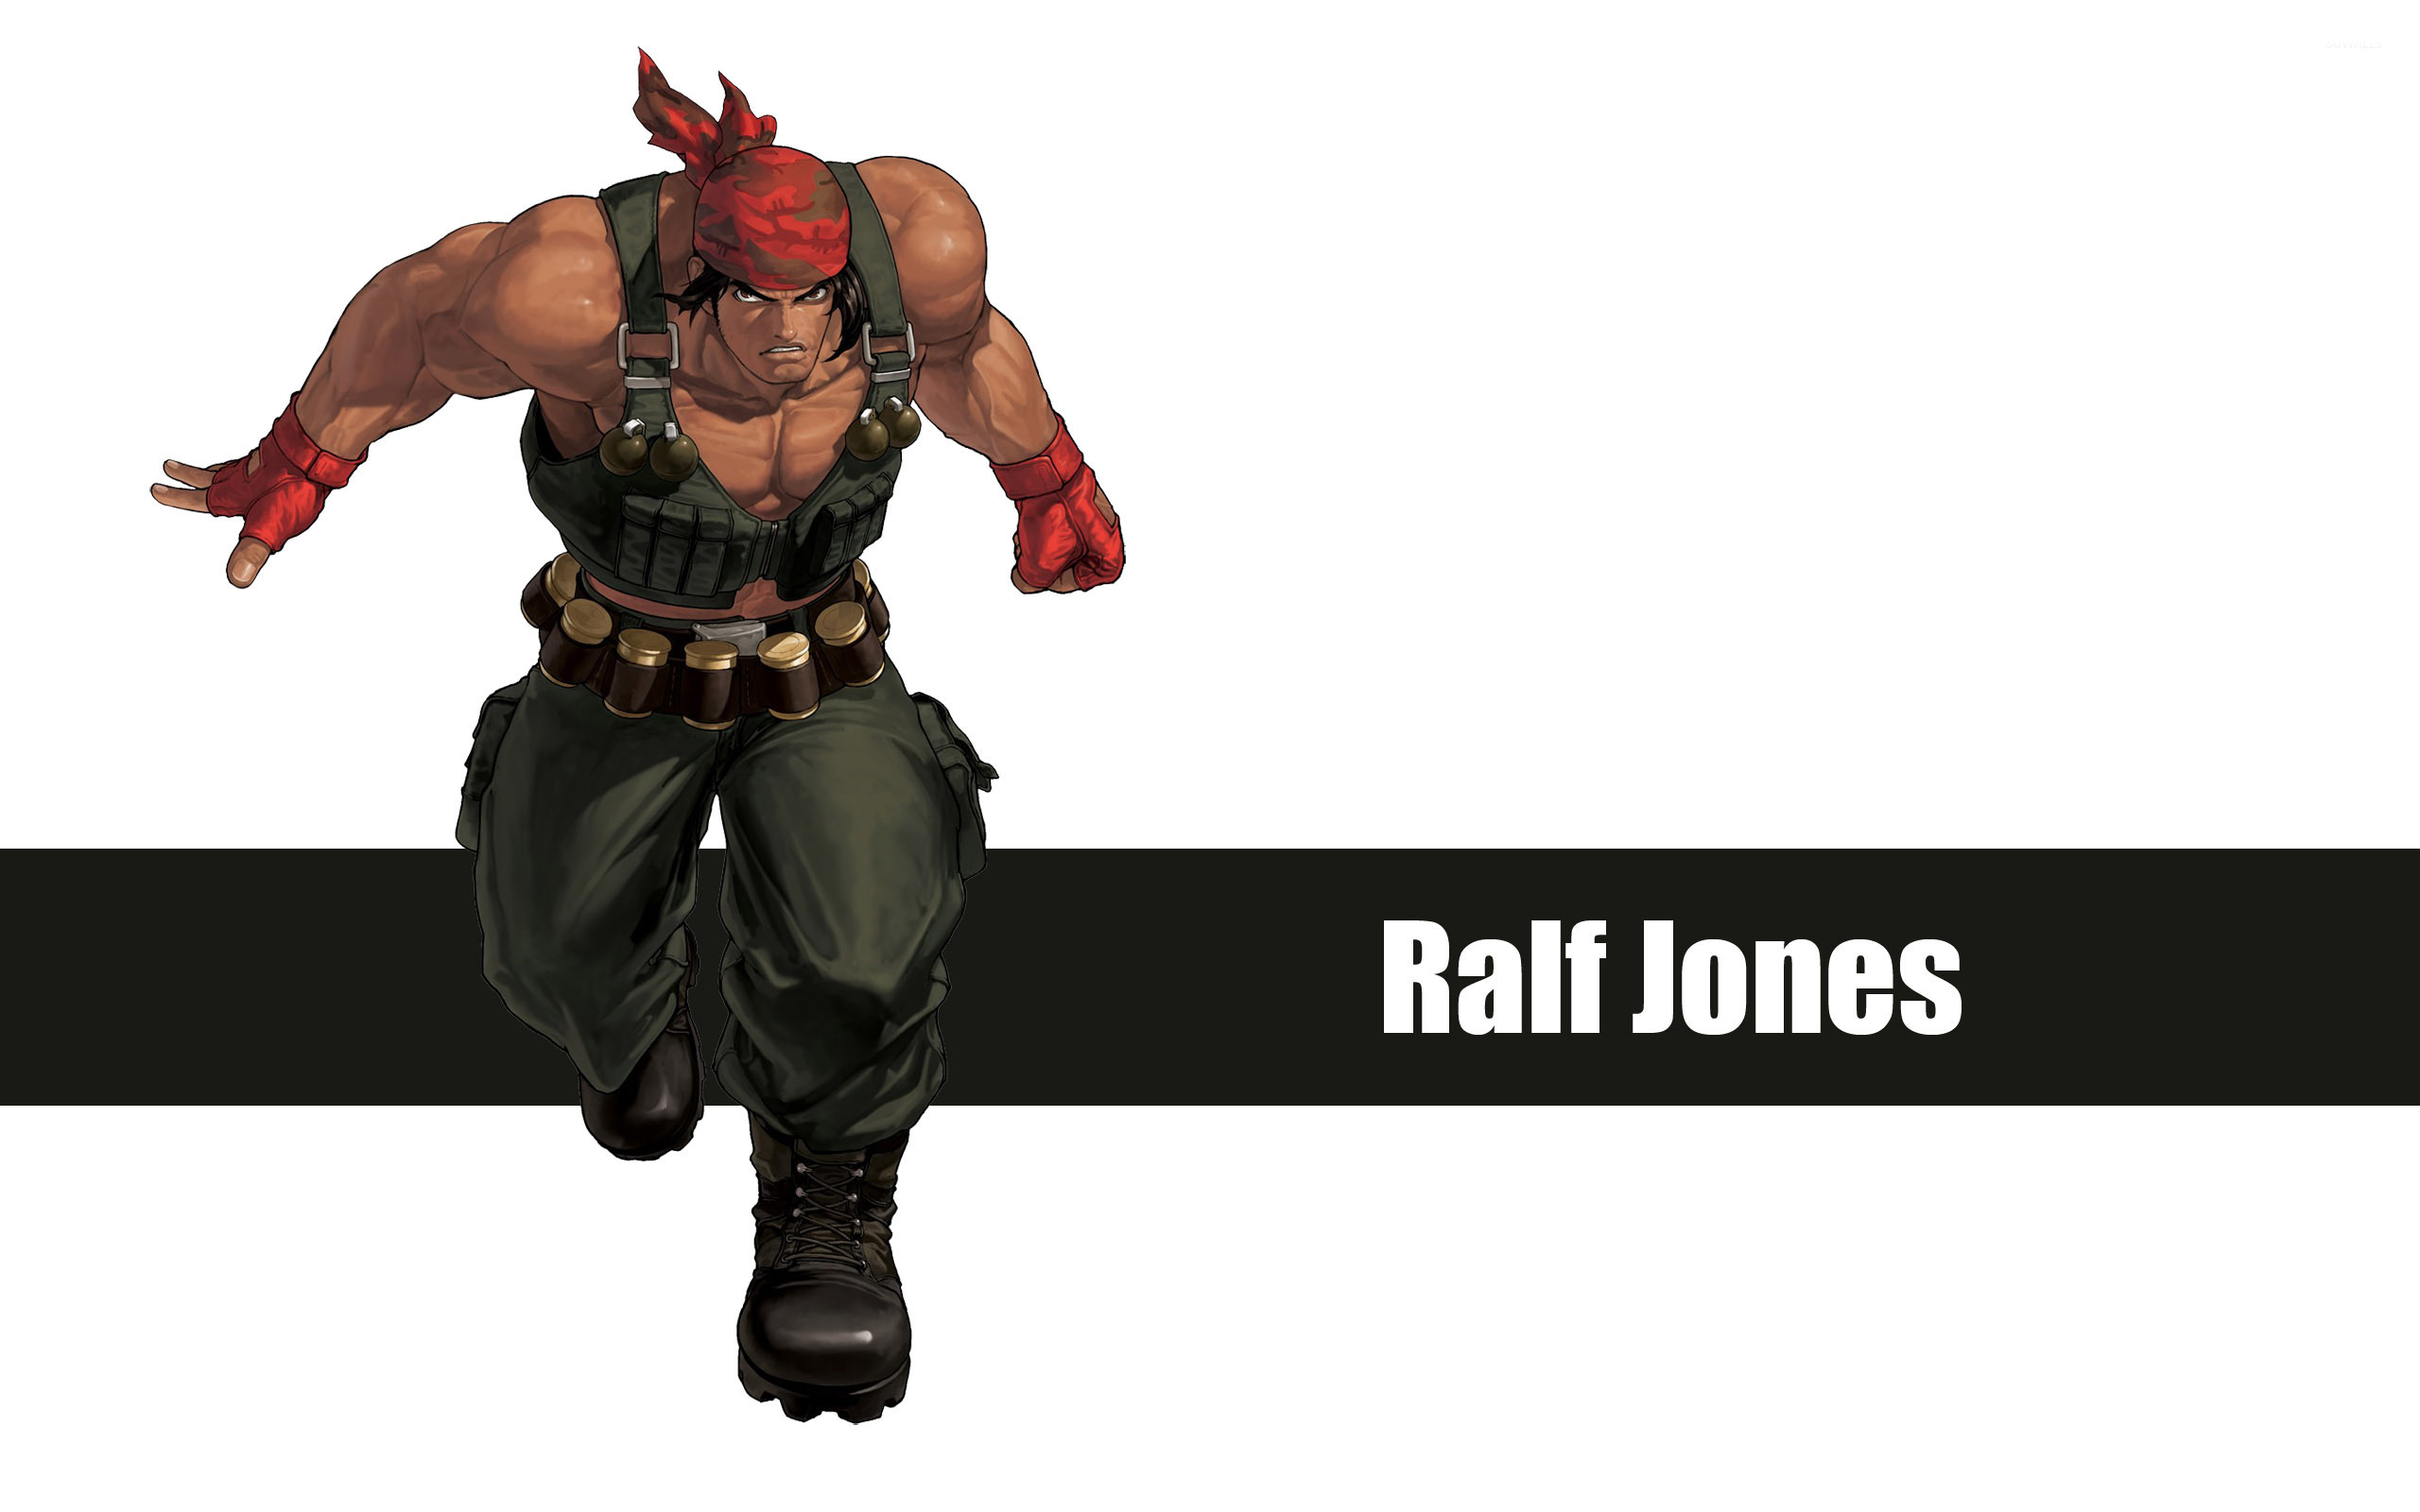 Ralf Jones The King Of Fighters Wallpaper Game Wallpapers 30530